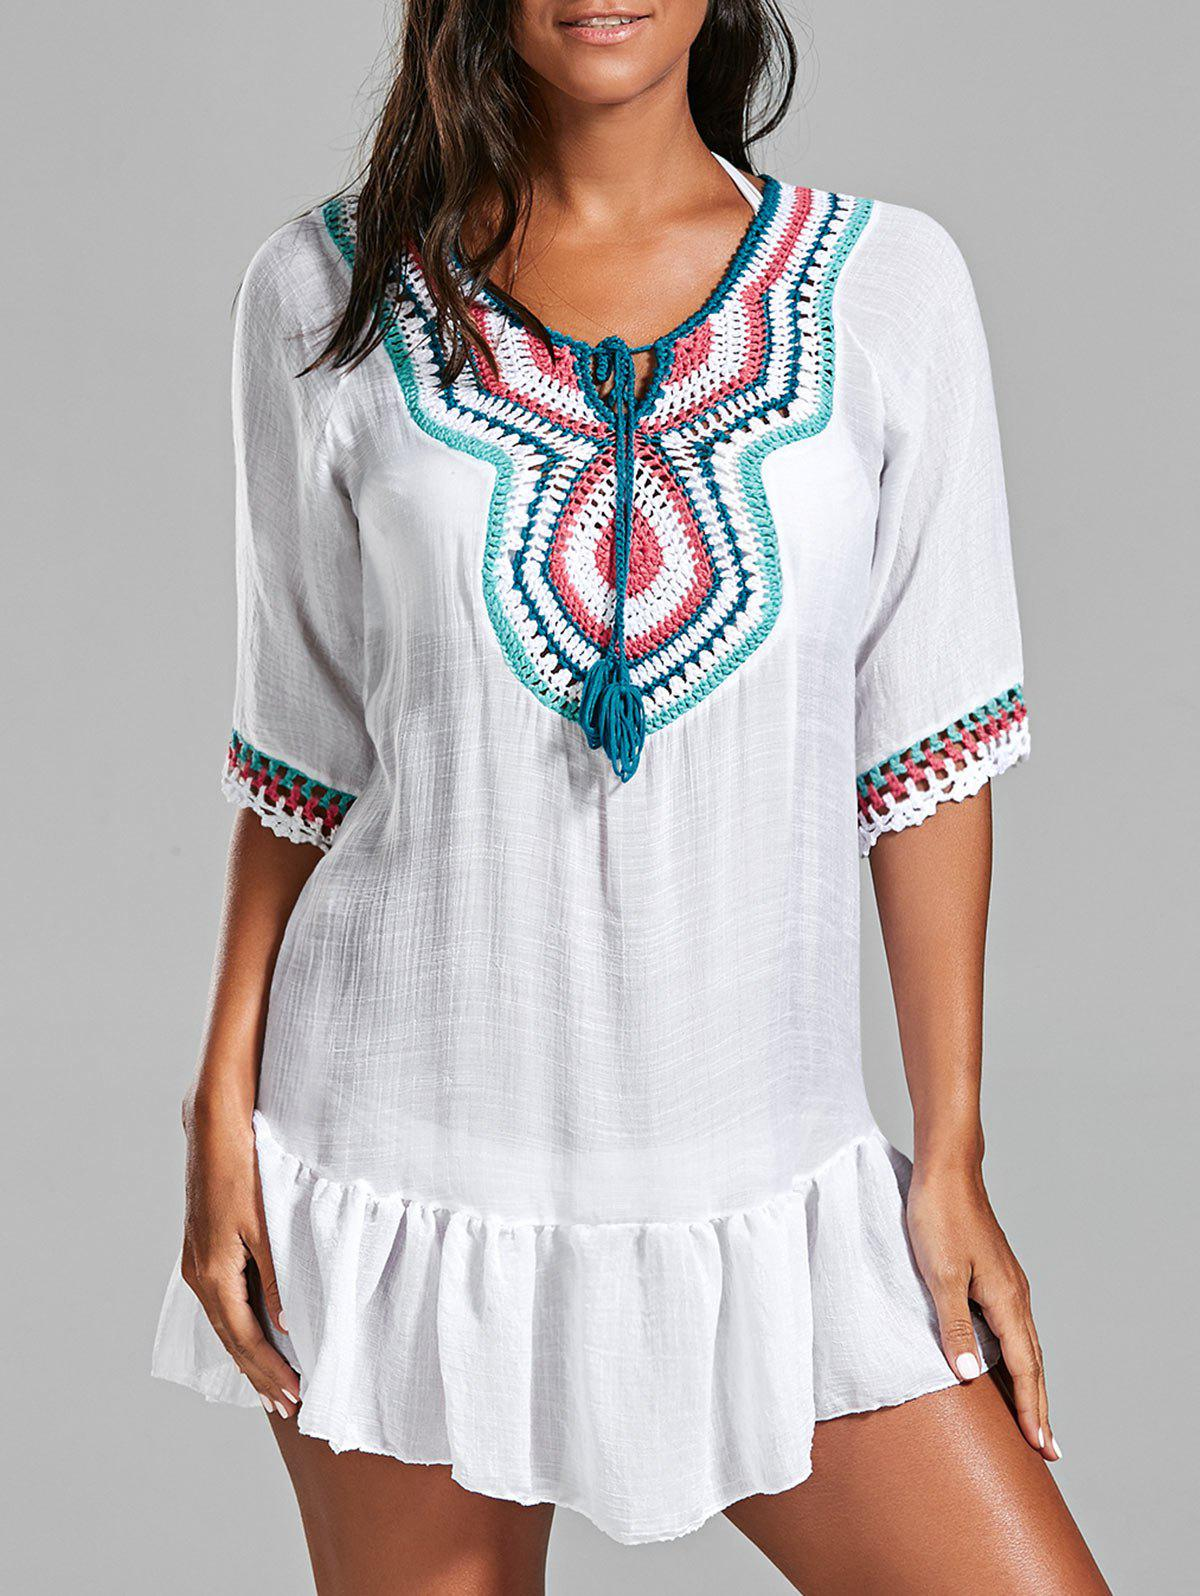 Crochet Peasant Cover-Up Tunic Dress - WHITE ONE SIZE